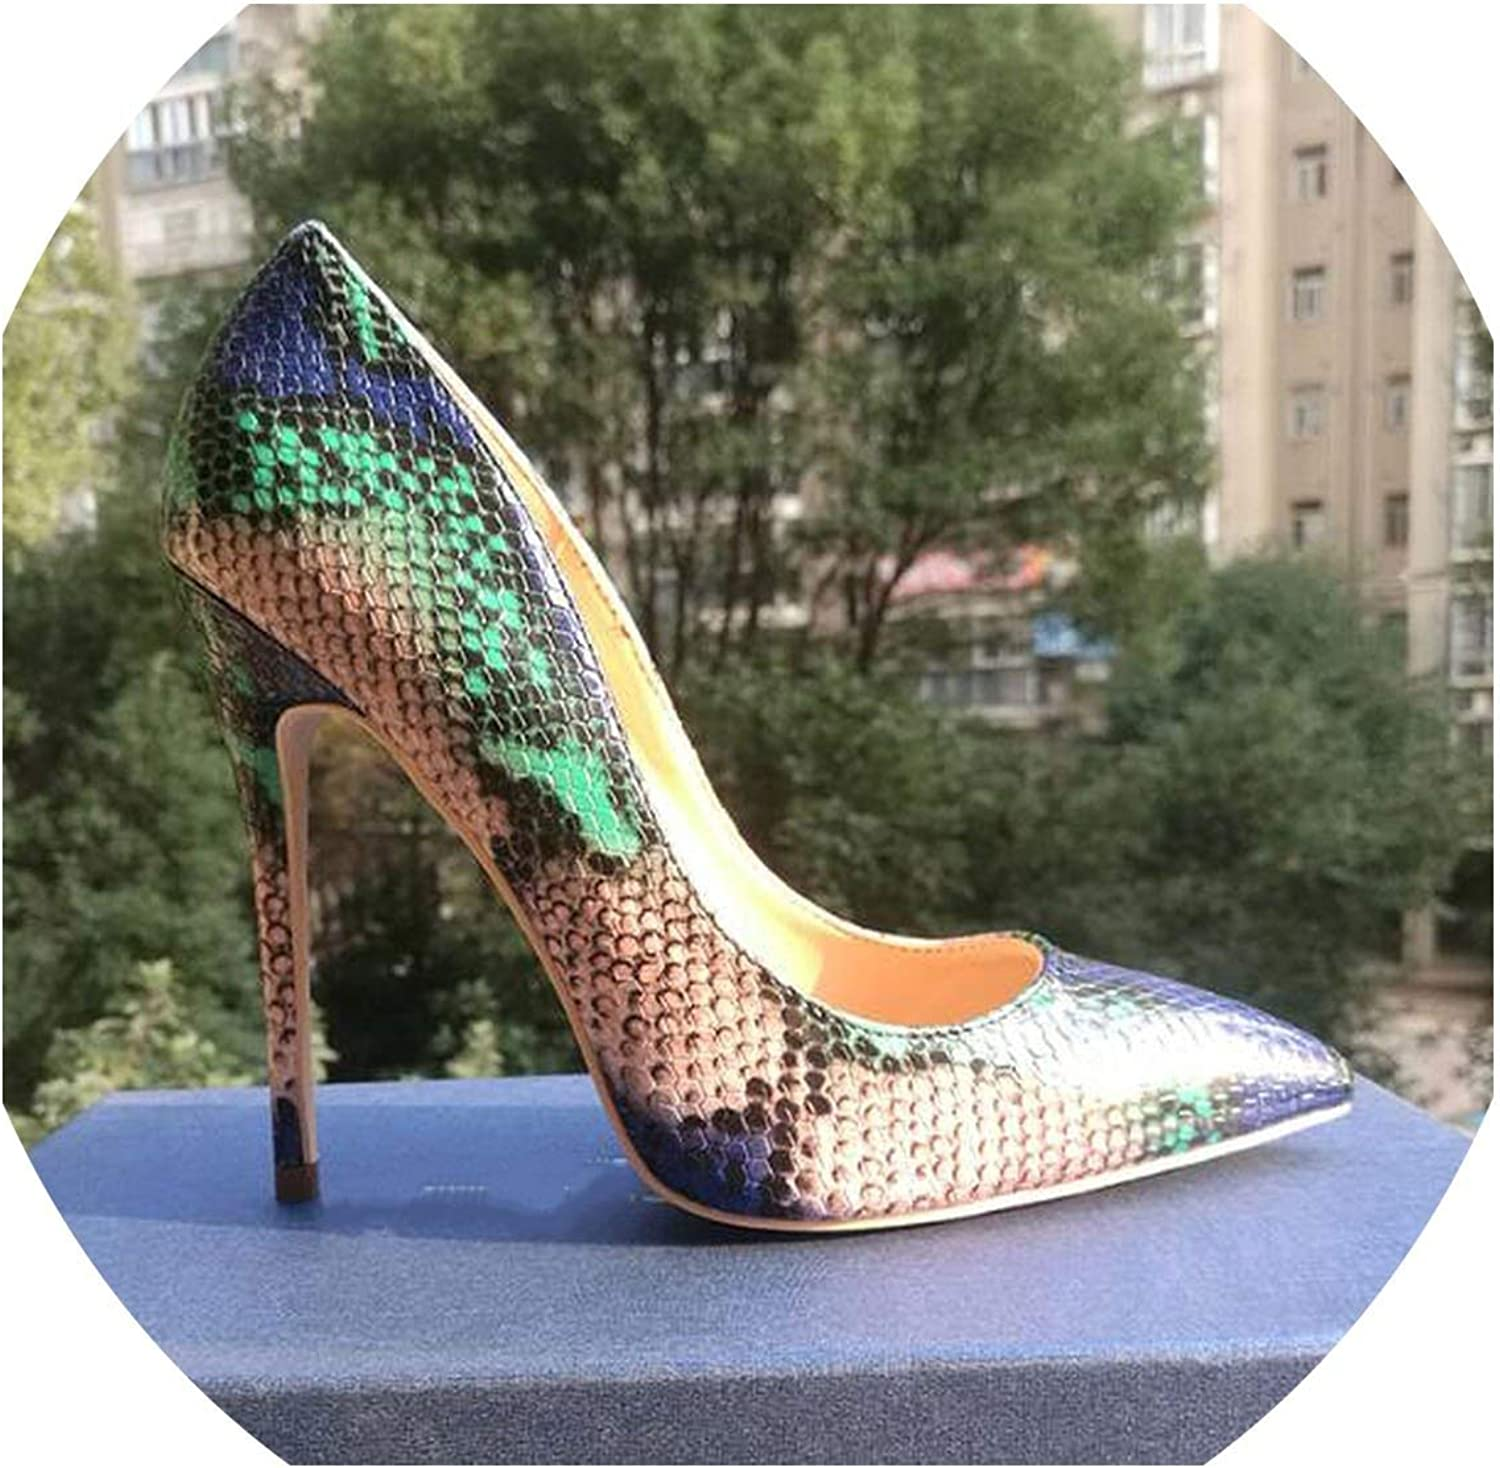 Pleasantlyday Snake Printing Women High Heels Fashion bluee Sexy shoes